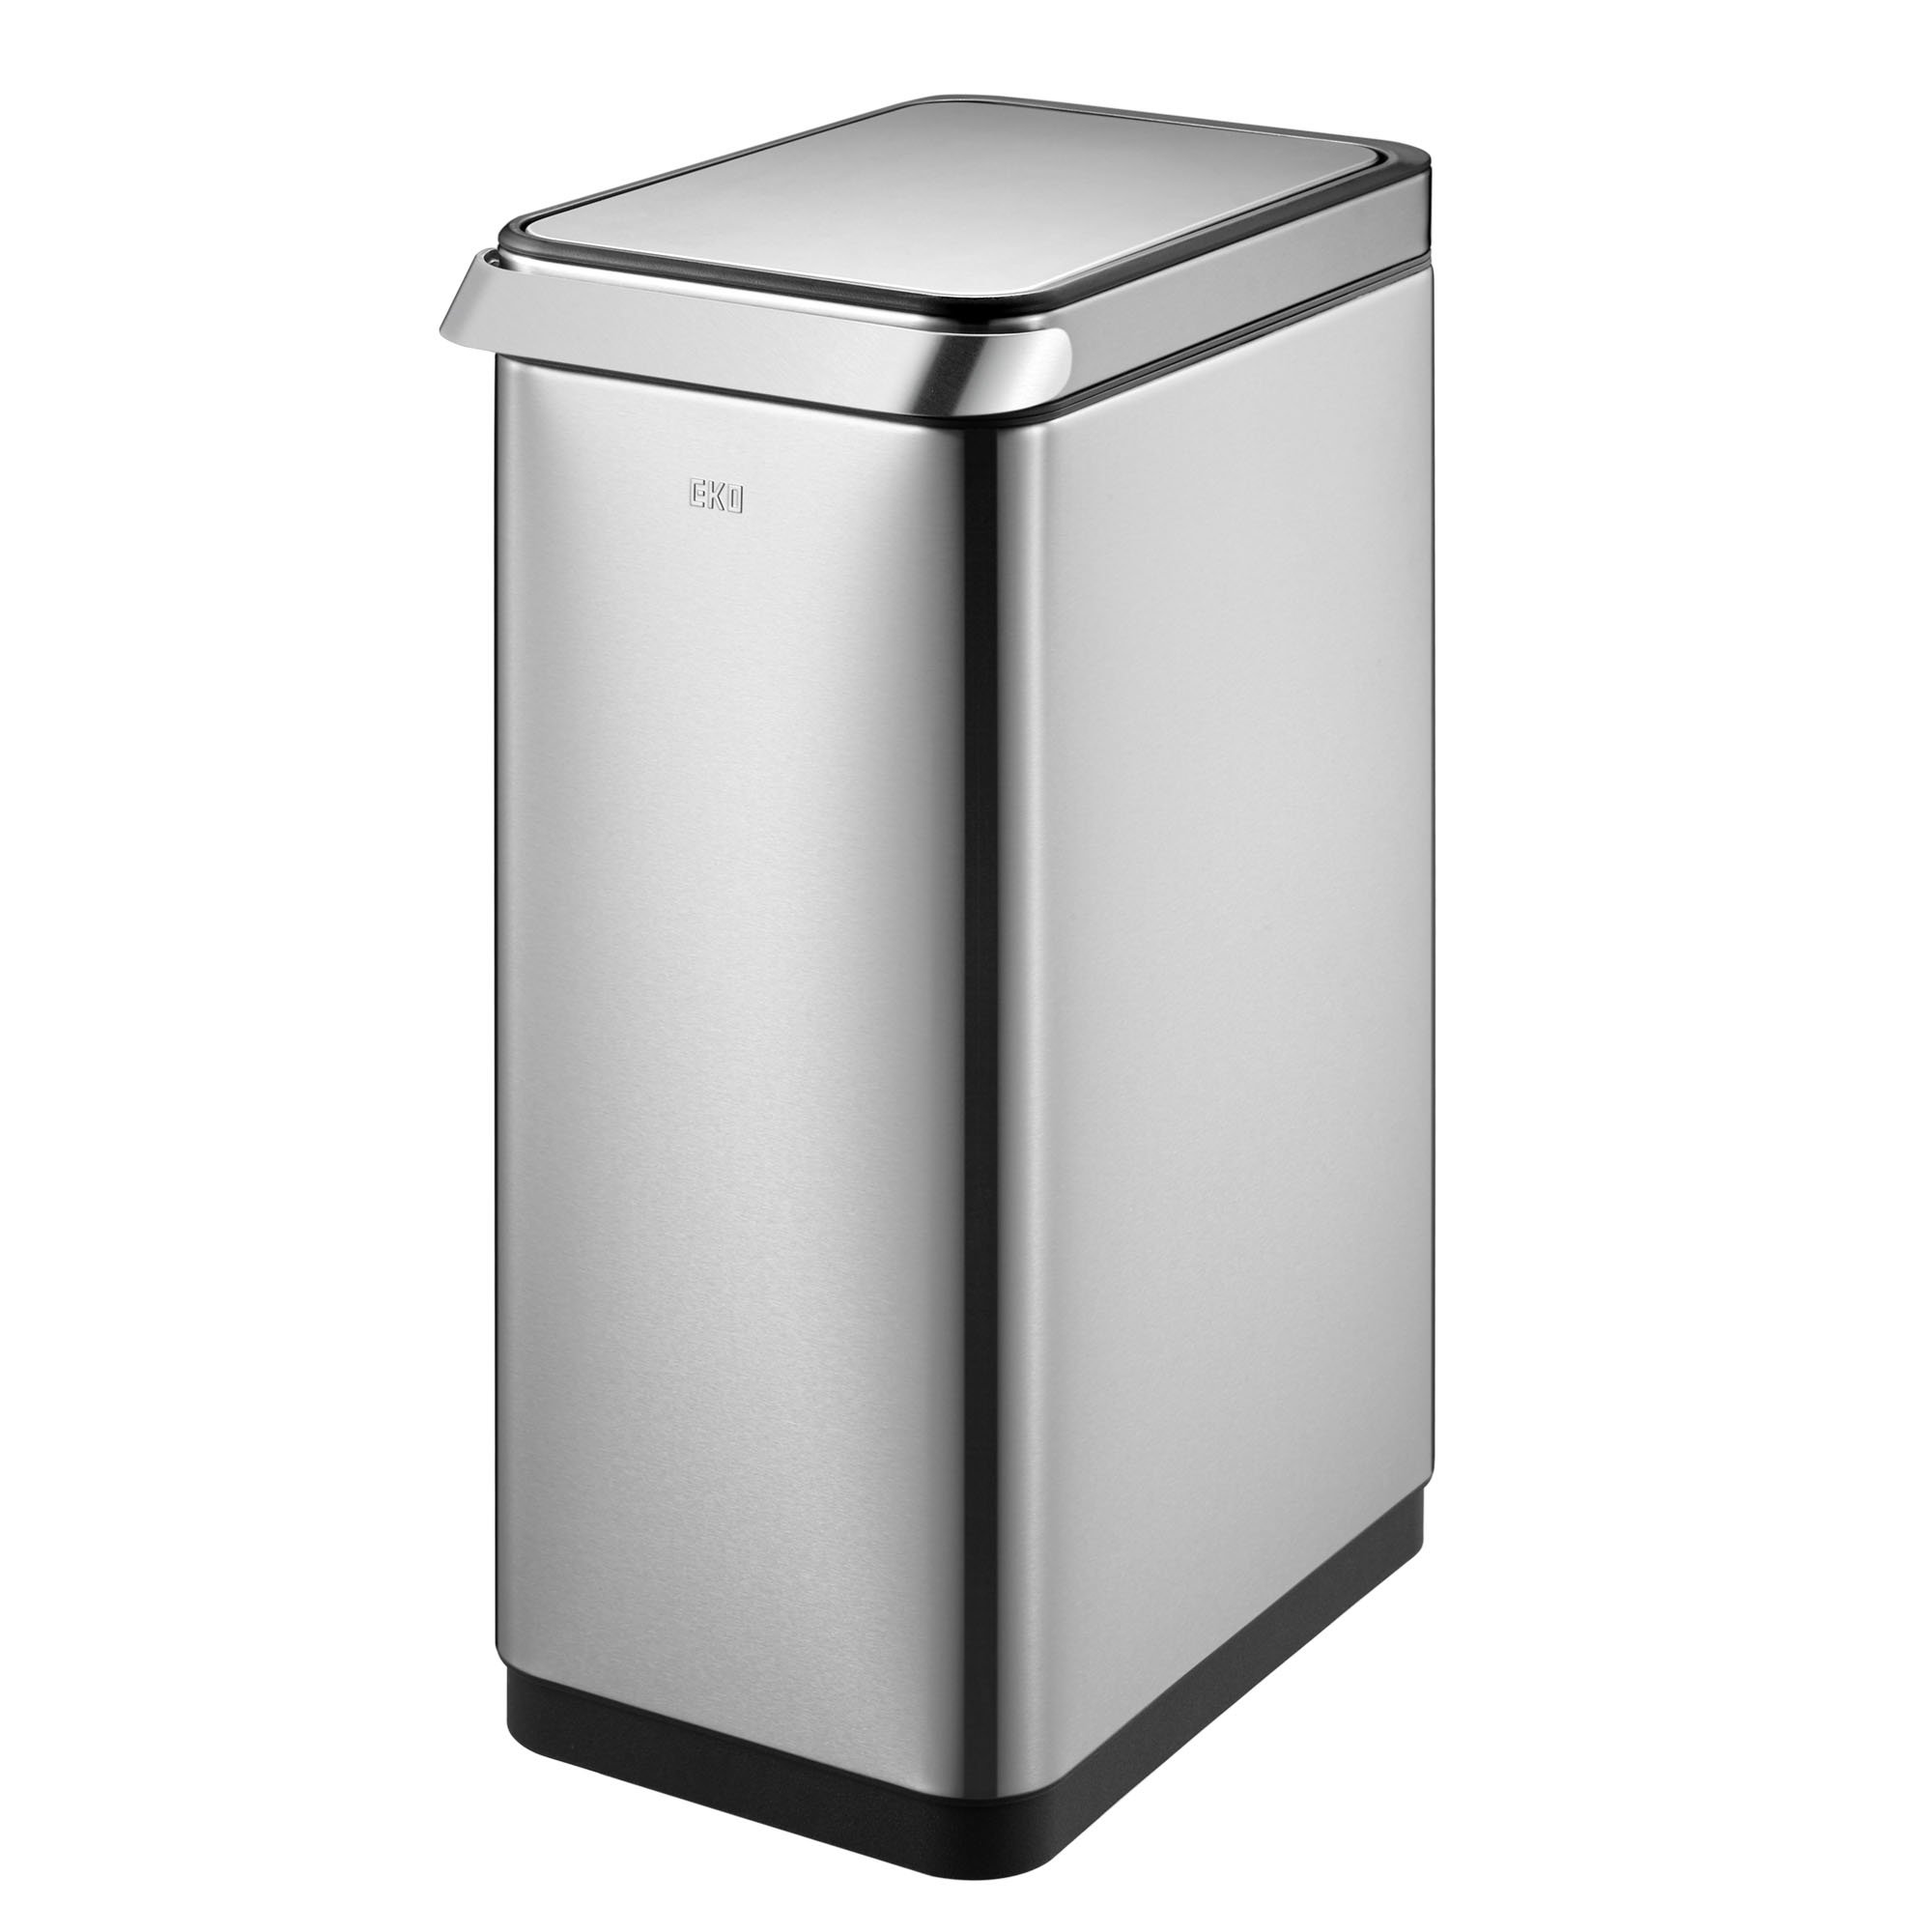 EKO 91795-1 Touch Pro Step Bin Trash Can and Recycler | Stainless Steel | 50 L